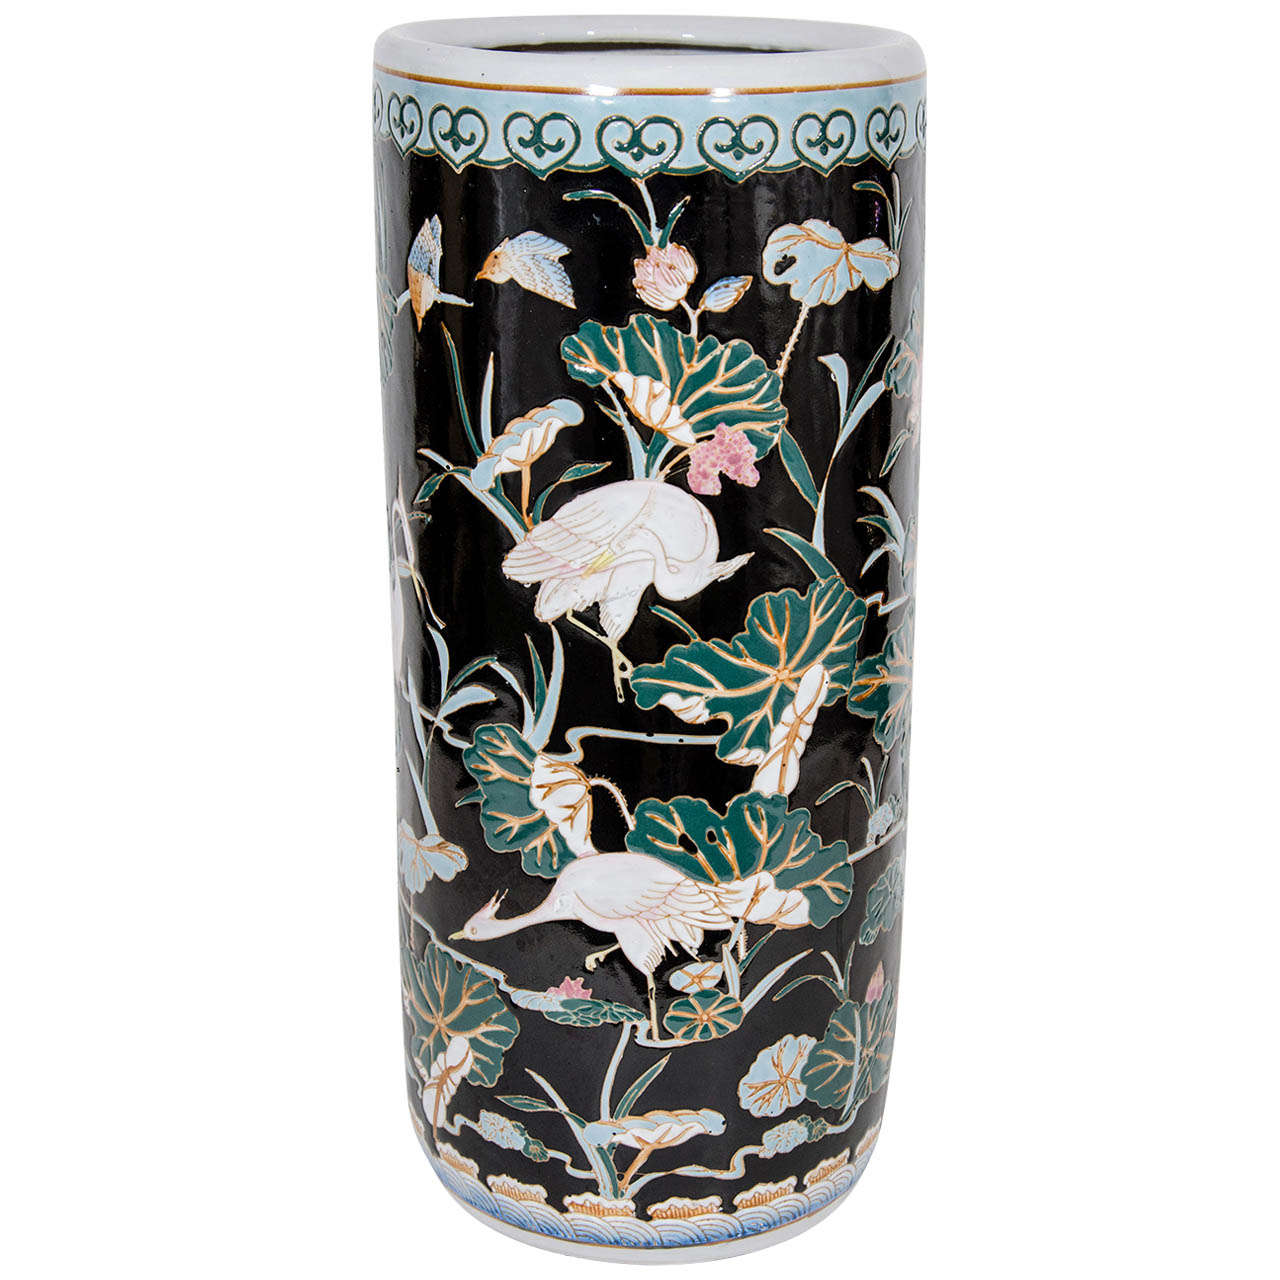 Exquisite Porcelain Umbrella Stand With Hand Painted